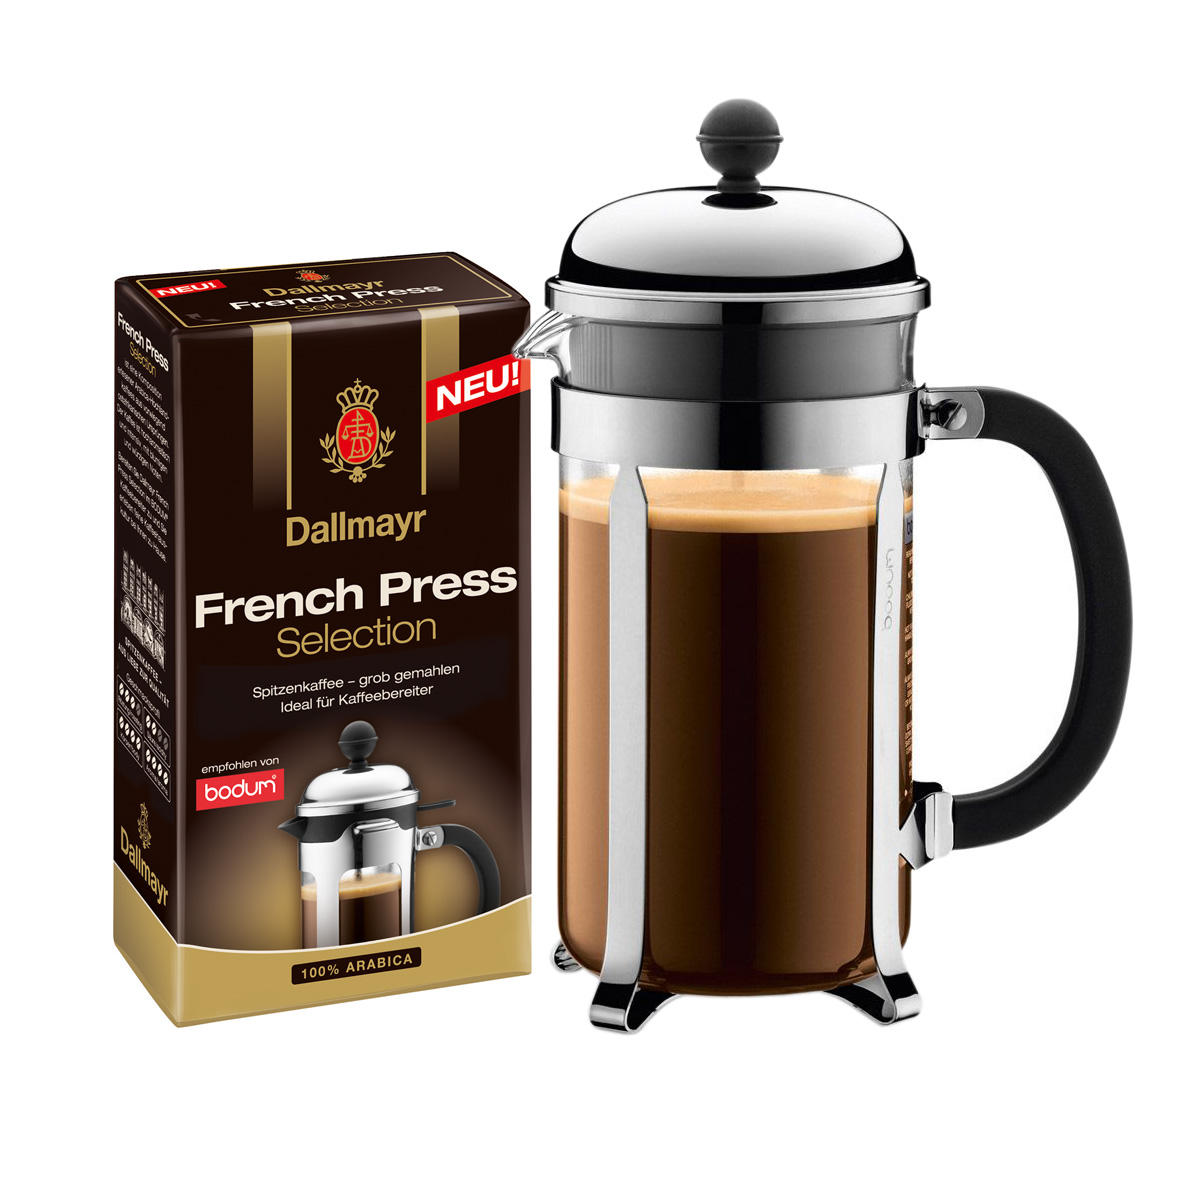 Bodum Tassen Bodum Chambord Coffee Maker 3 Cups Dallmayr Coffee French Press Selection Coarsely Grounded 250g At About Tea De Shop